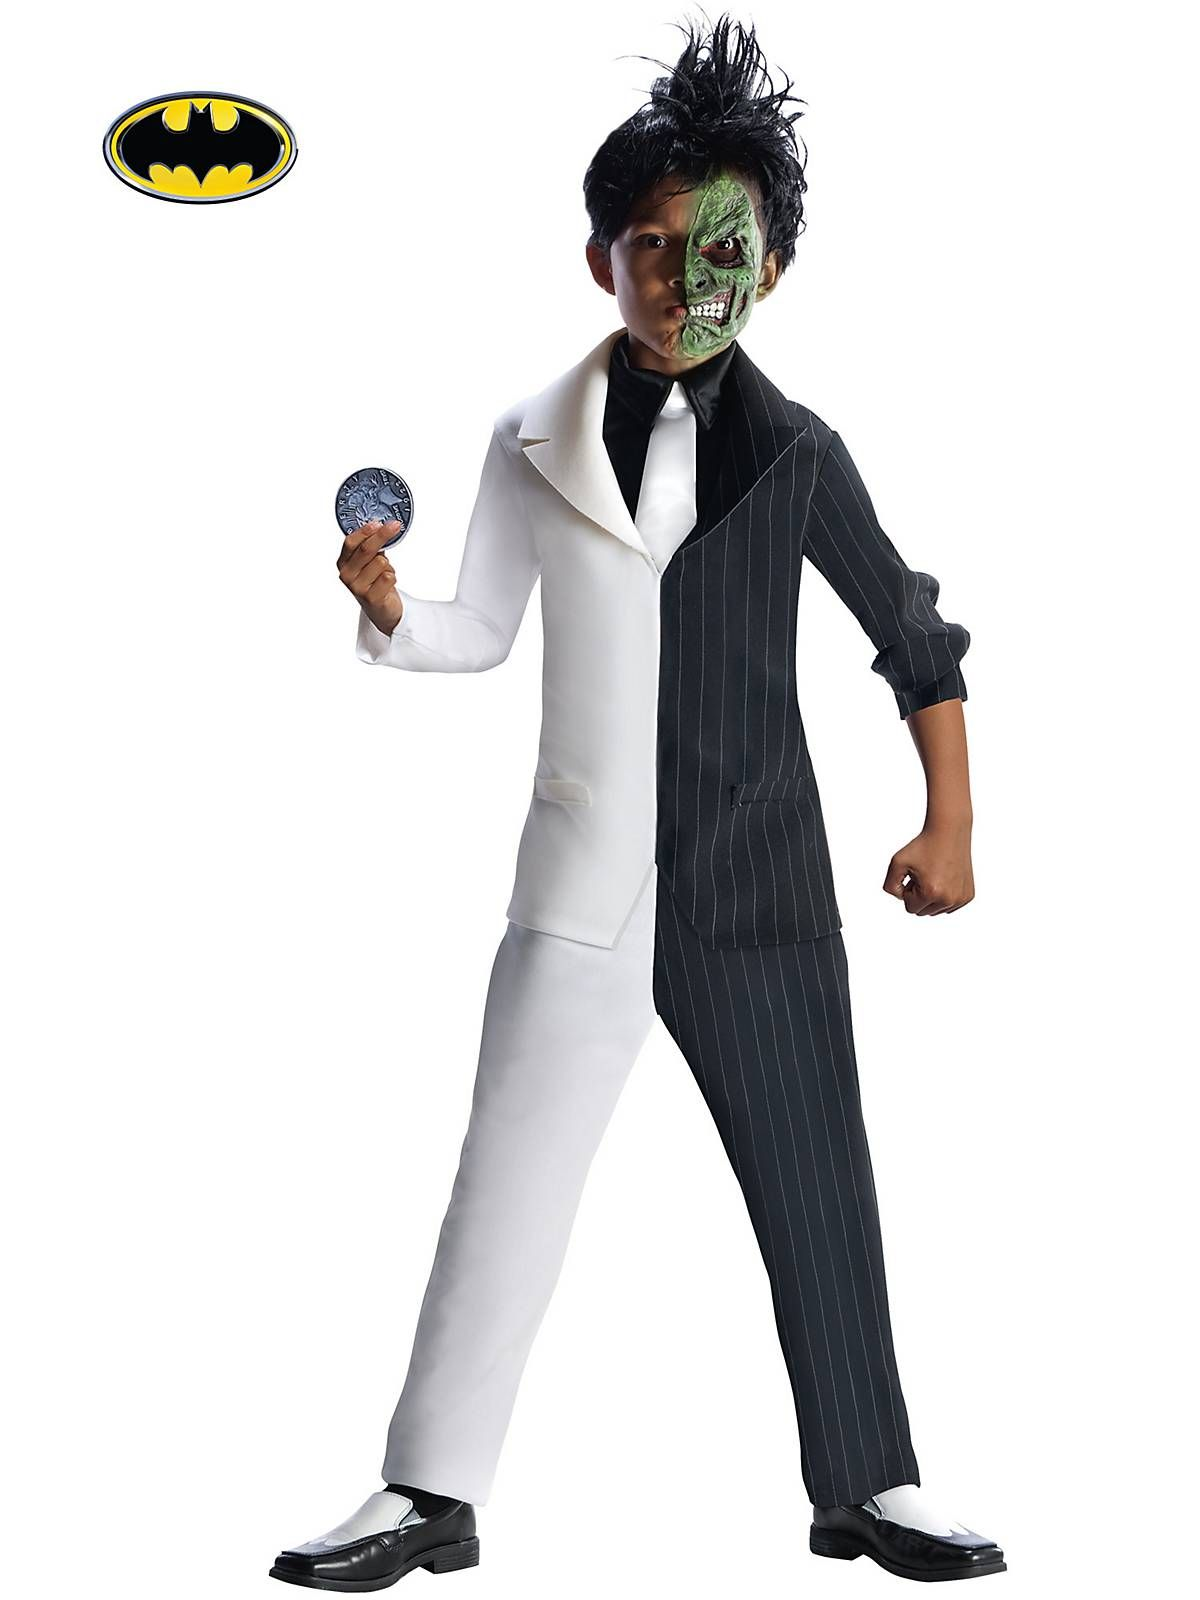 Stand out with this this Gothamu0027s Super Villain Two-Face costume.  sc 1 st  Pinterest & Boyu0027s DC Comics Batmanu0027s Super Villain Two-Face Costume | Costumes ...